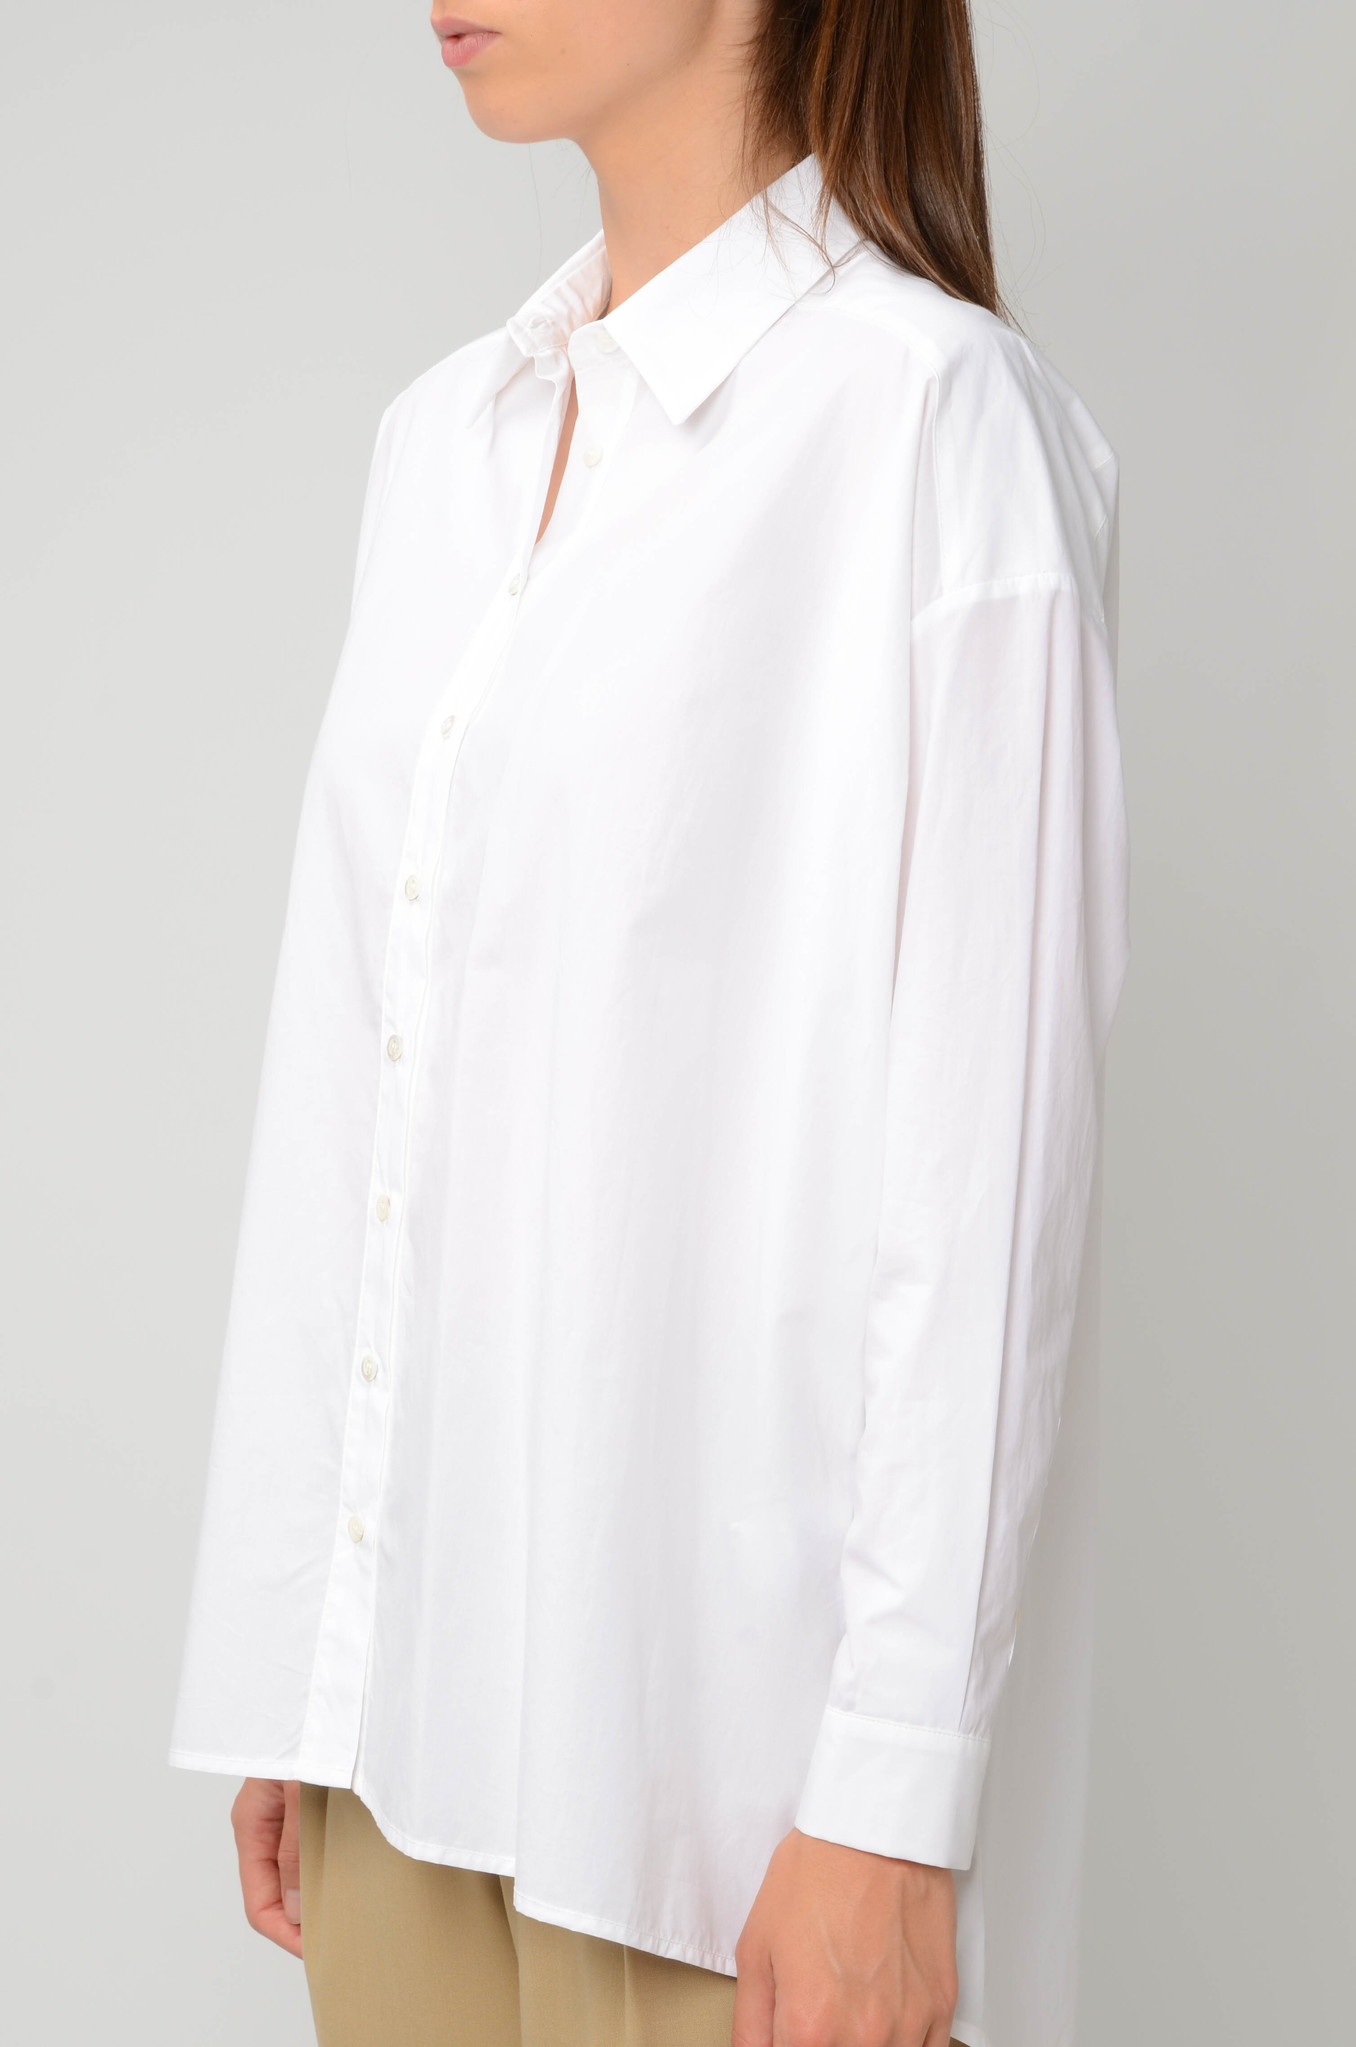 ESSENTIAL SHIRT IN WHITE-3